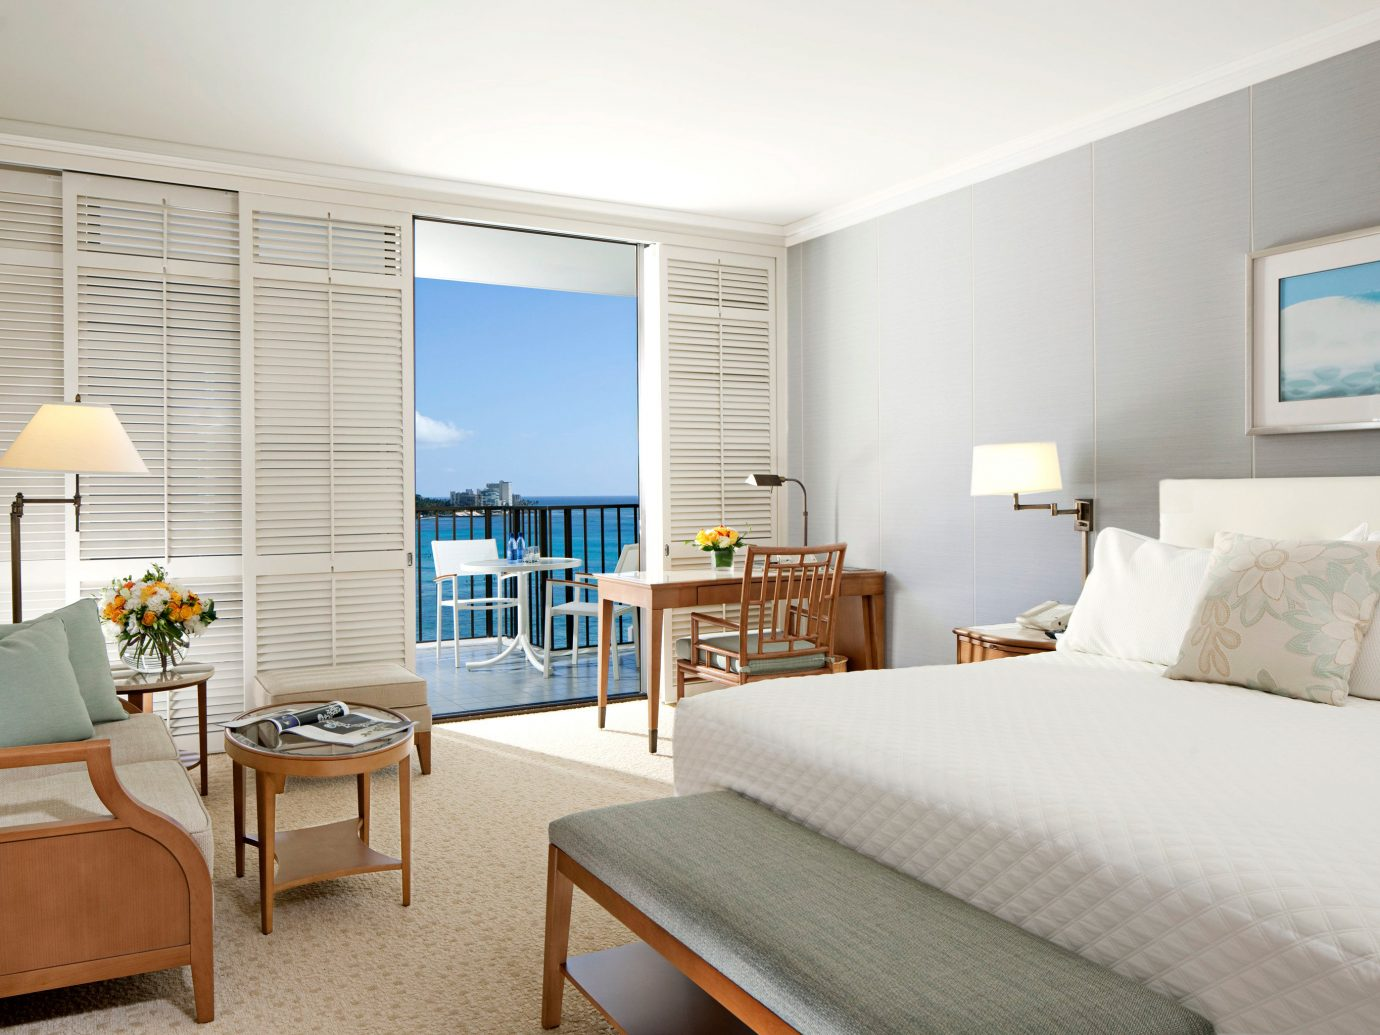 Balcony Bedroom Boutique Hotels Hawaii Honolulu Hotels Living Luxury Patio Resort Scenic views indoor wall floor room bed ceiling property window condominium real estate Suite interior design home estate hotel living room cottage apartment furniture